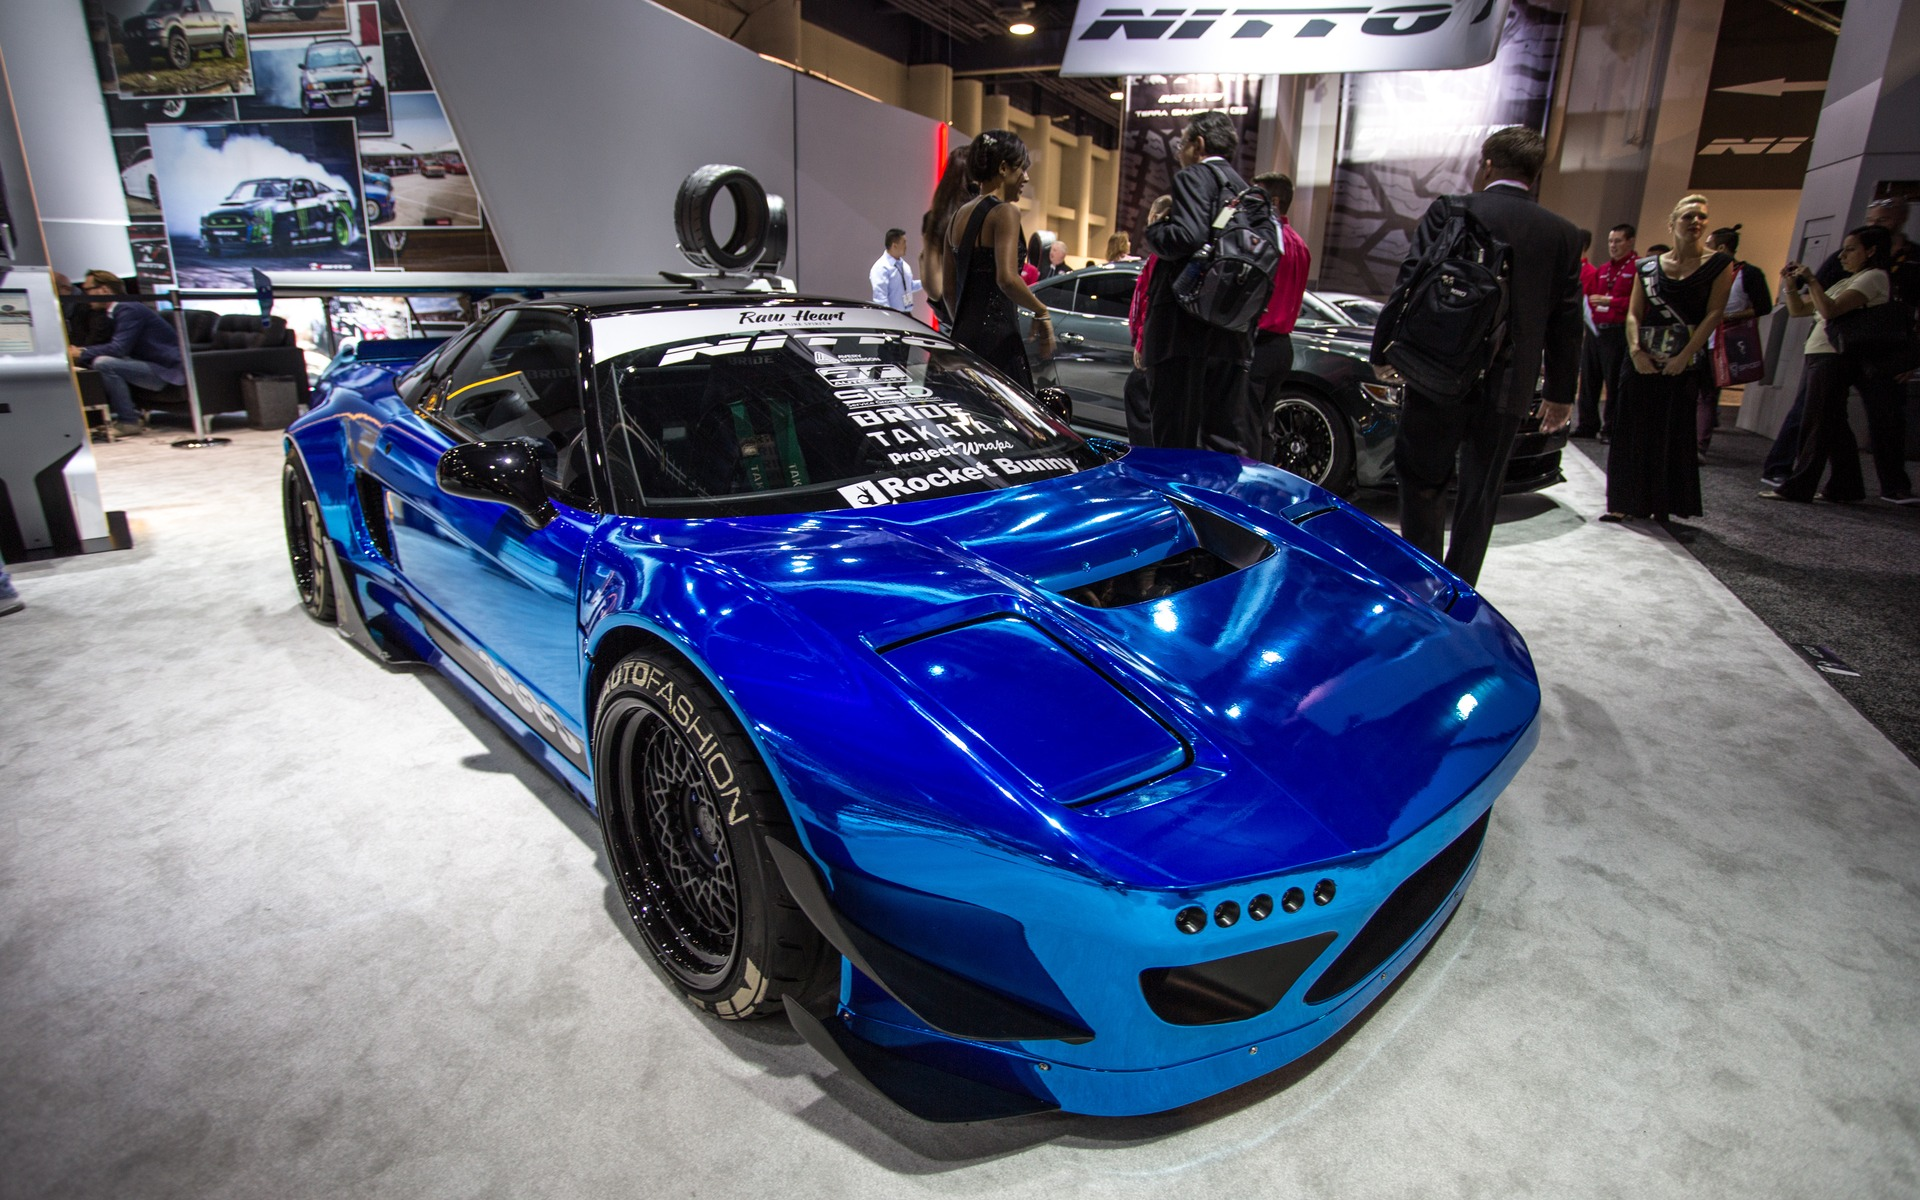 Subaru Brz 2014 >> The Beauties Of The Sema Show - 15/20